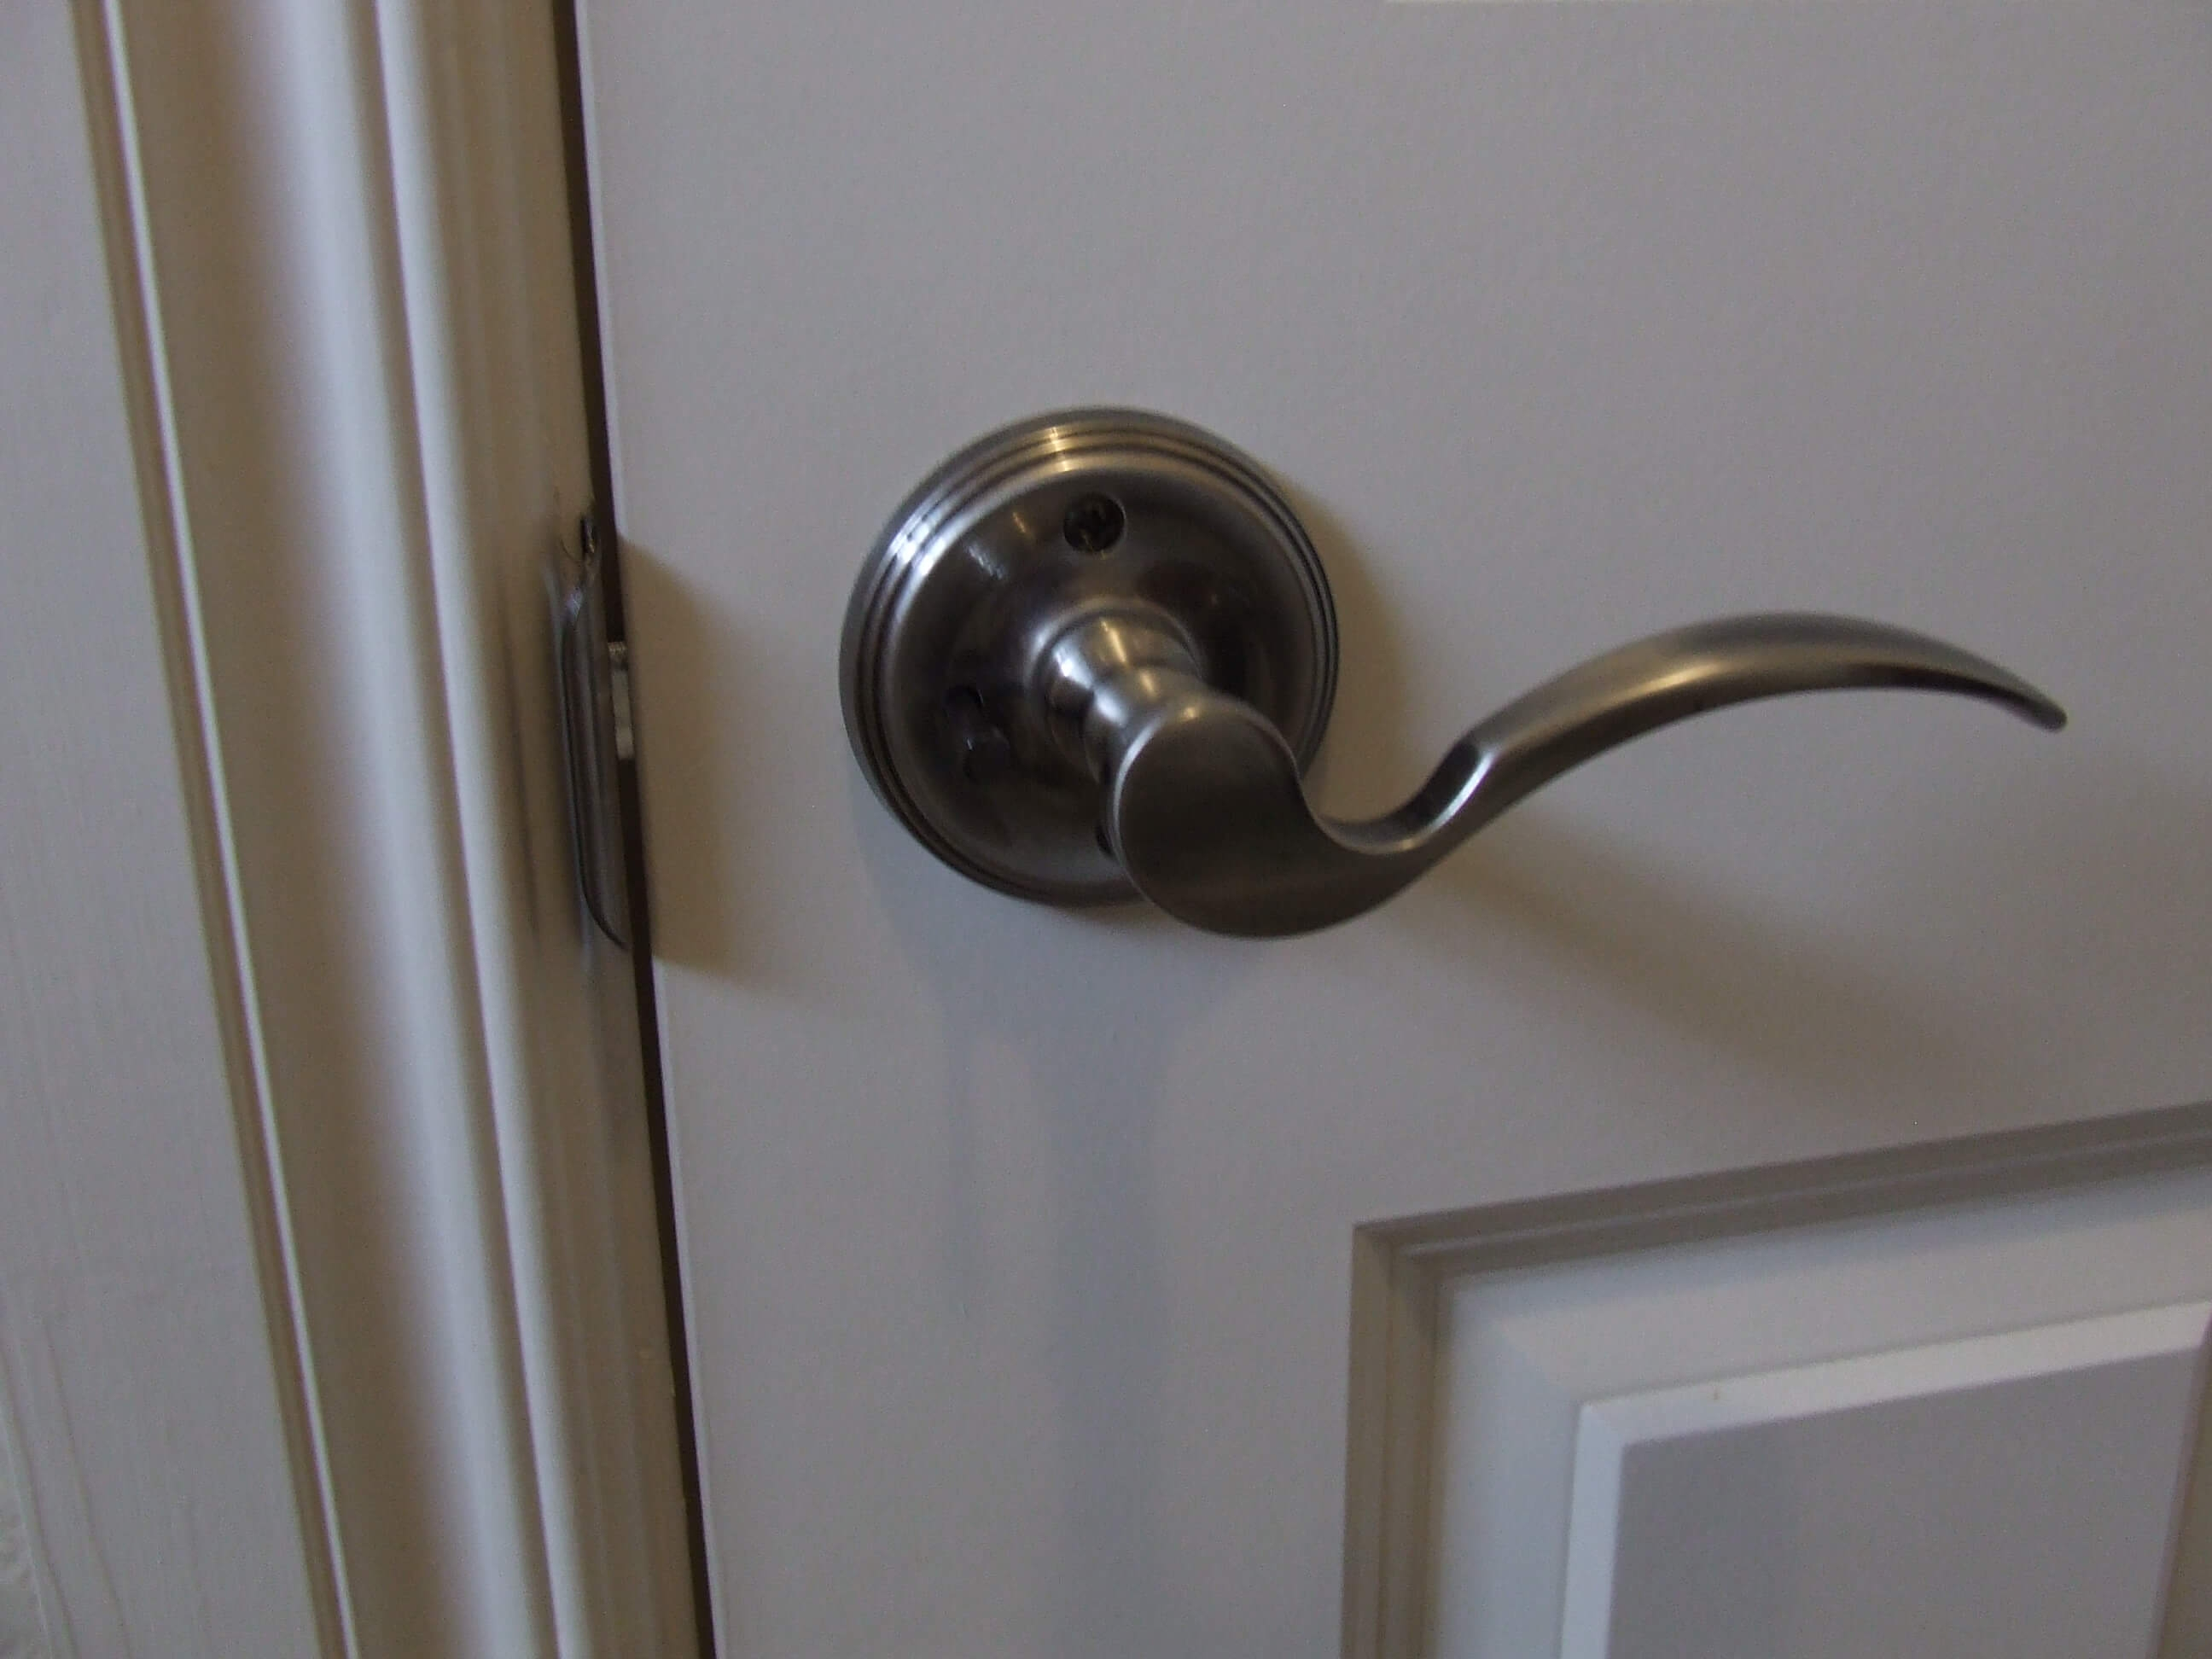 Permalink to Bathroom Door Handle Locked From Inside